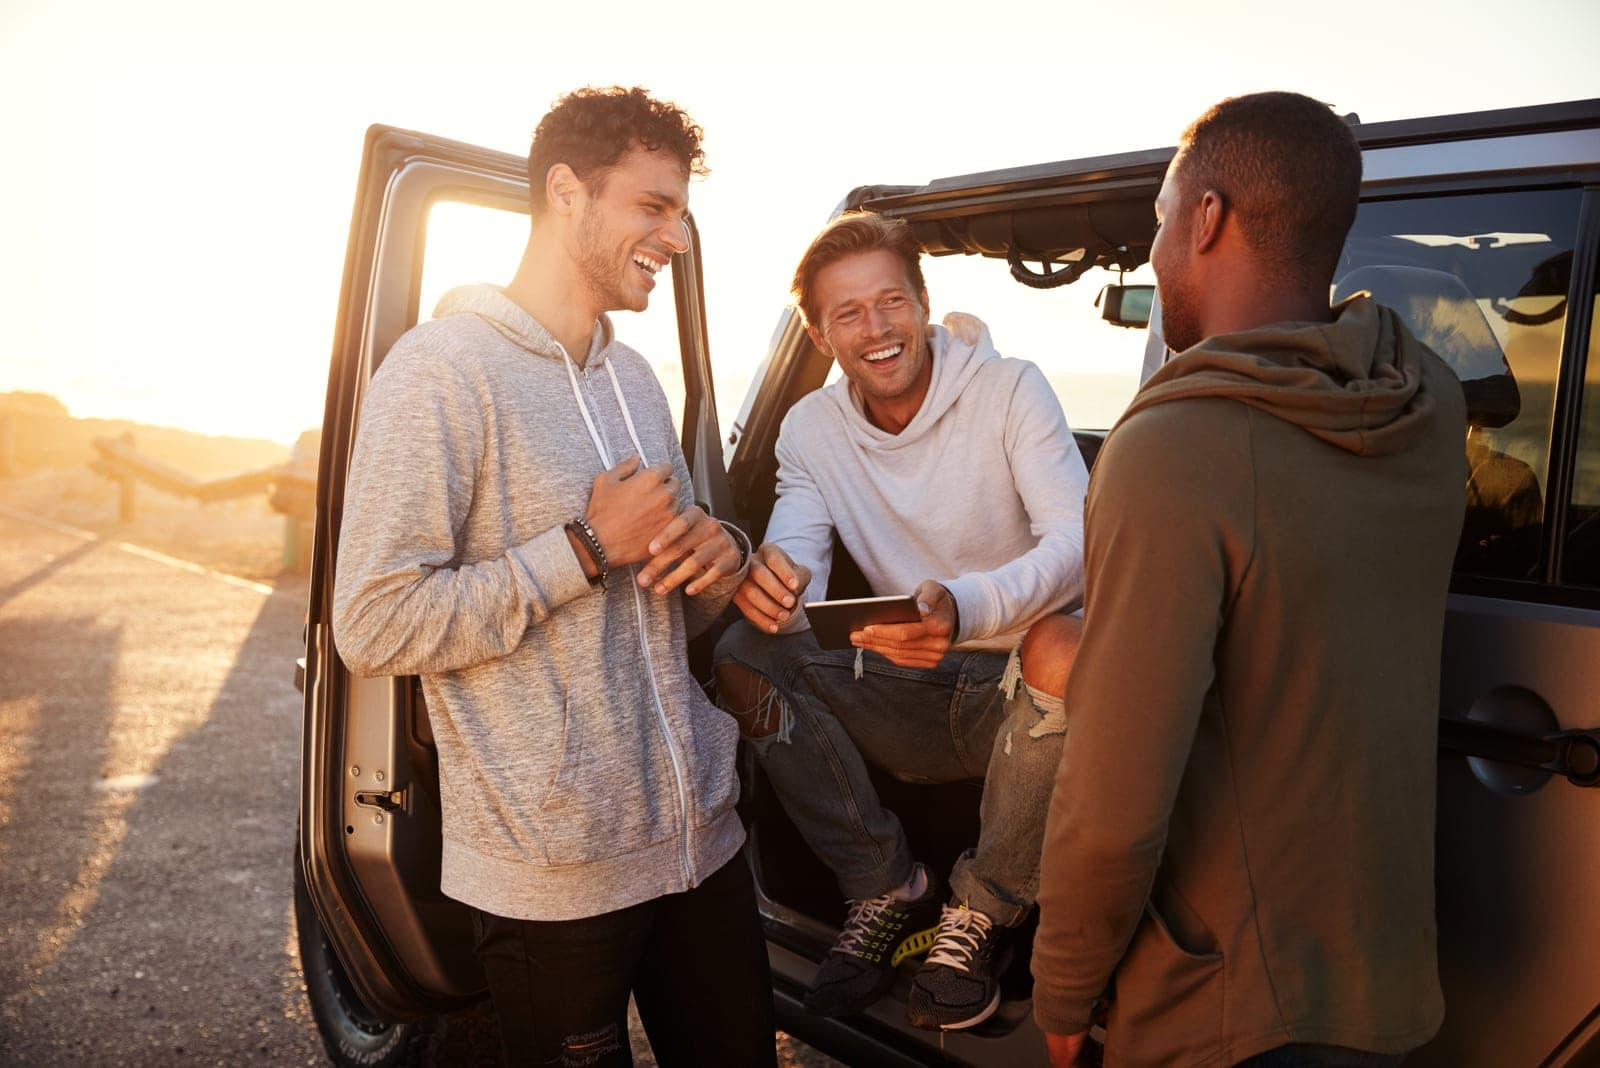 a man stands with friends next to a car and laughs